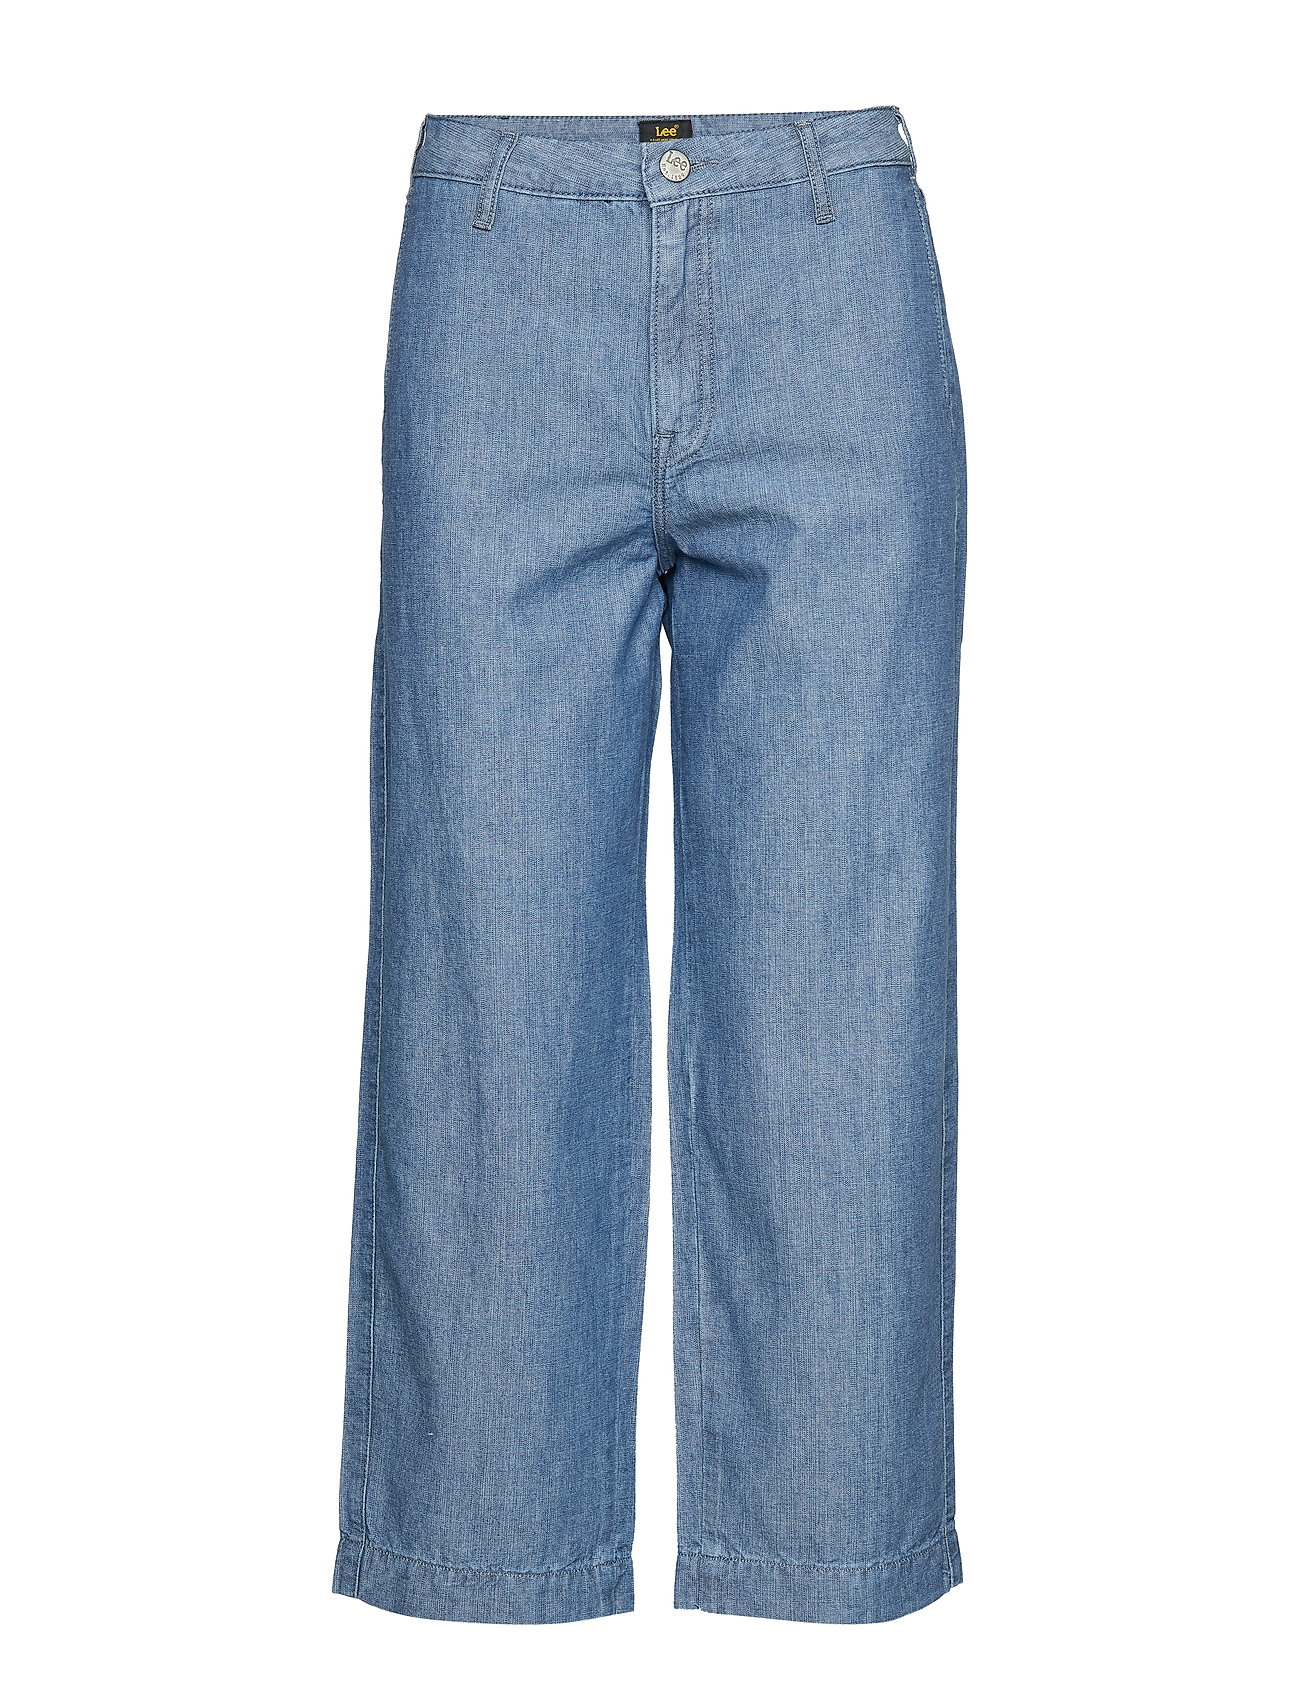 Lee Jeans WIDE LEG - CHAMBRAY